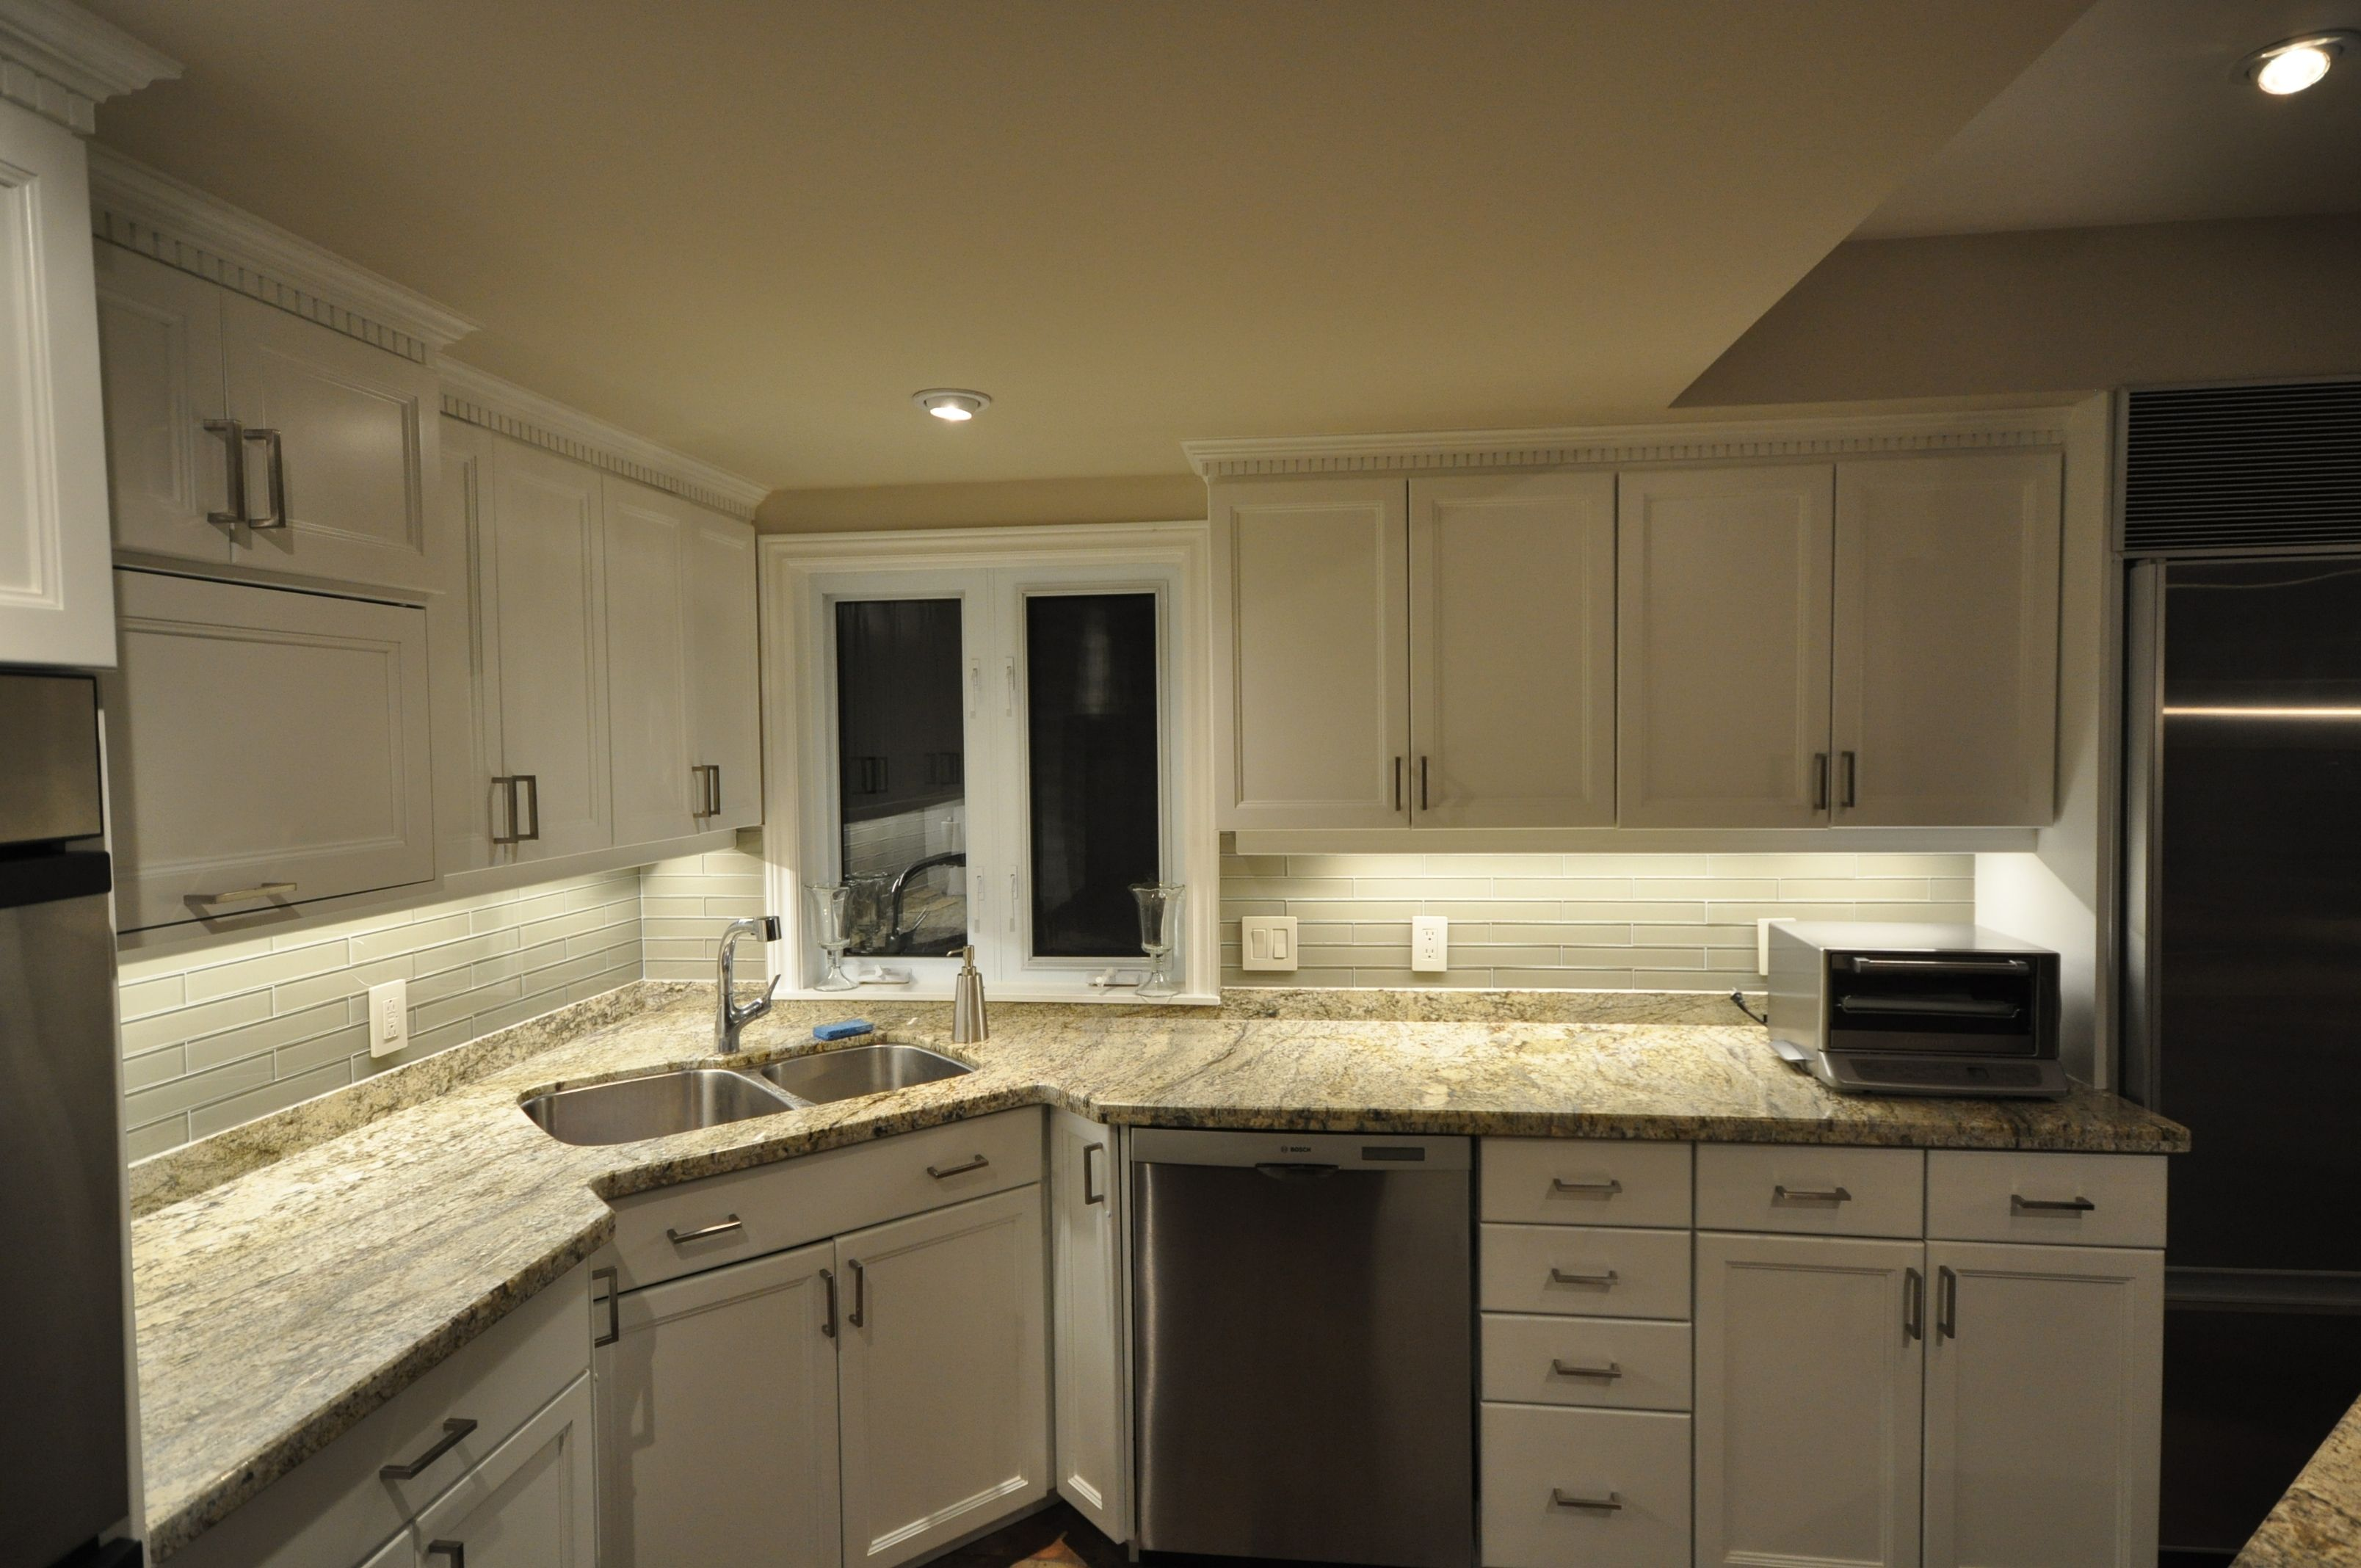 Kitchen Cabinets Under Lighting Rab Design 39s Led Strip Lights Install For Under Cabinet